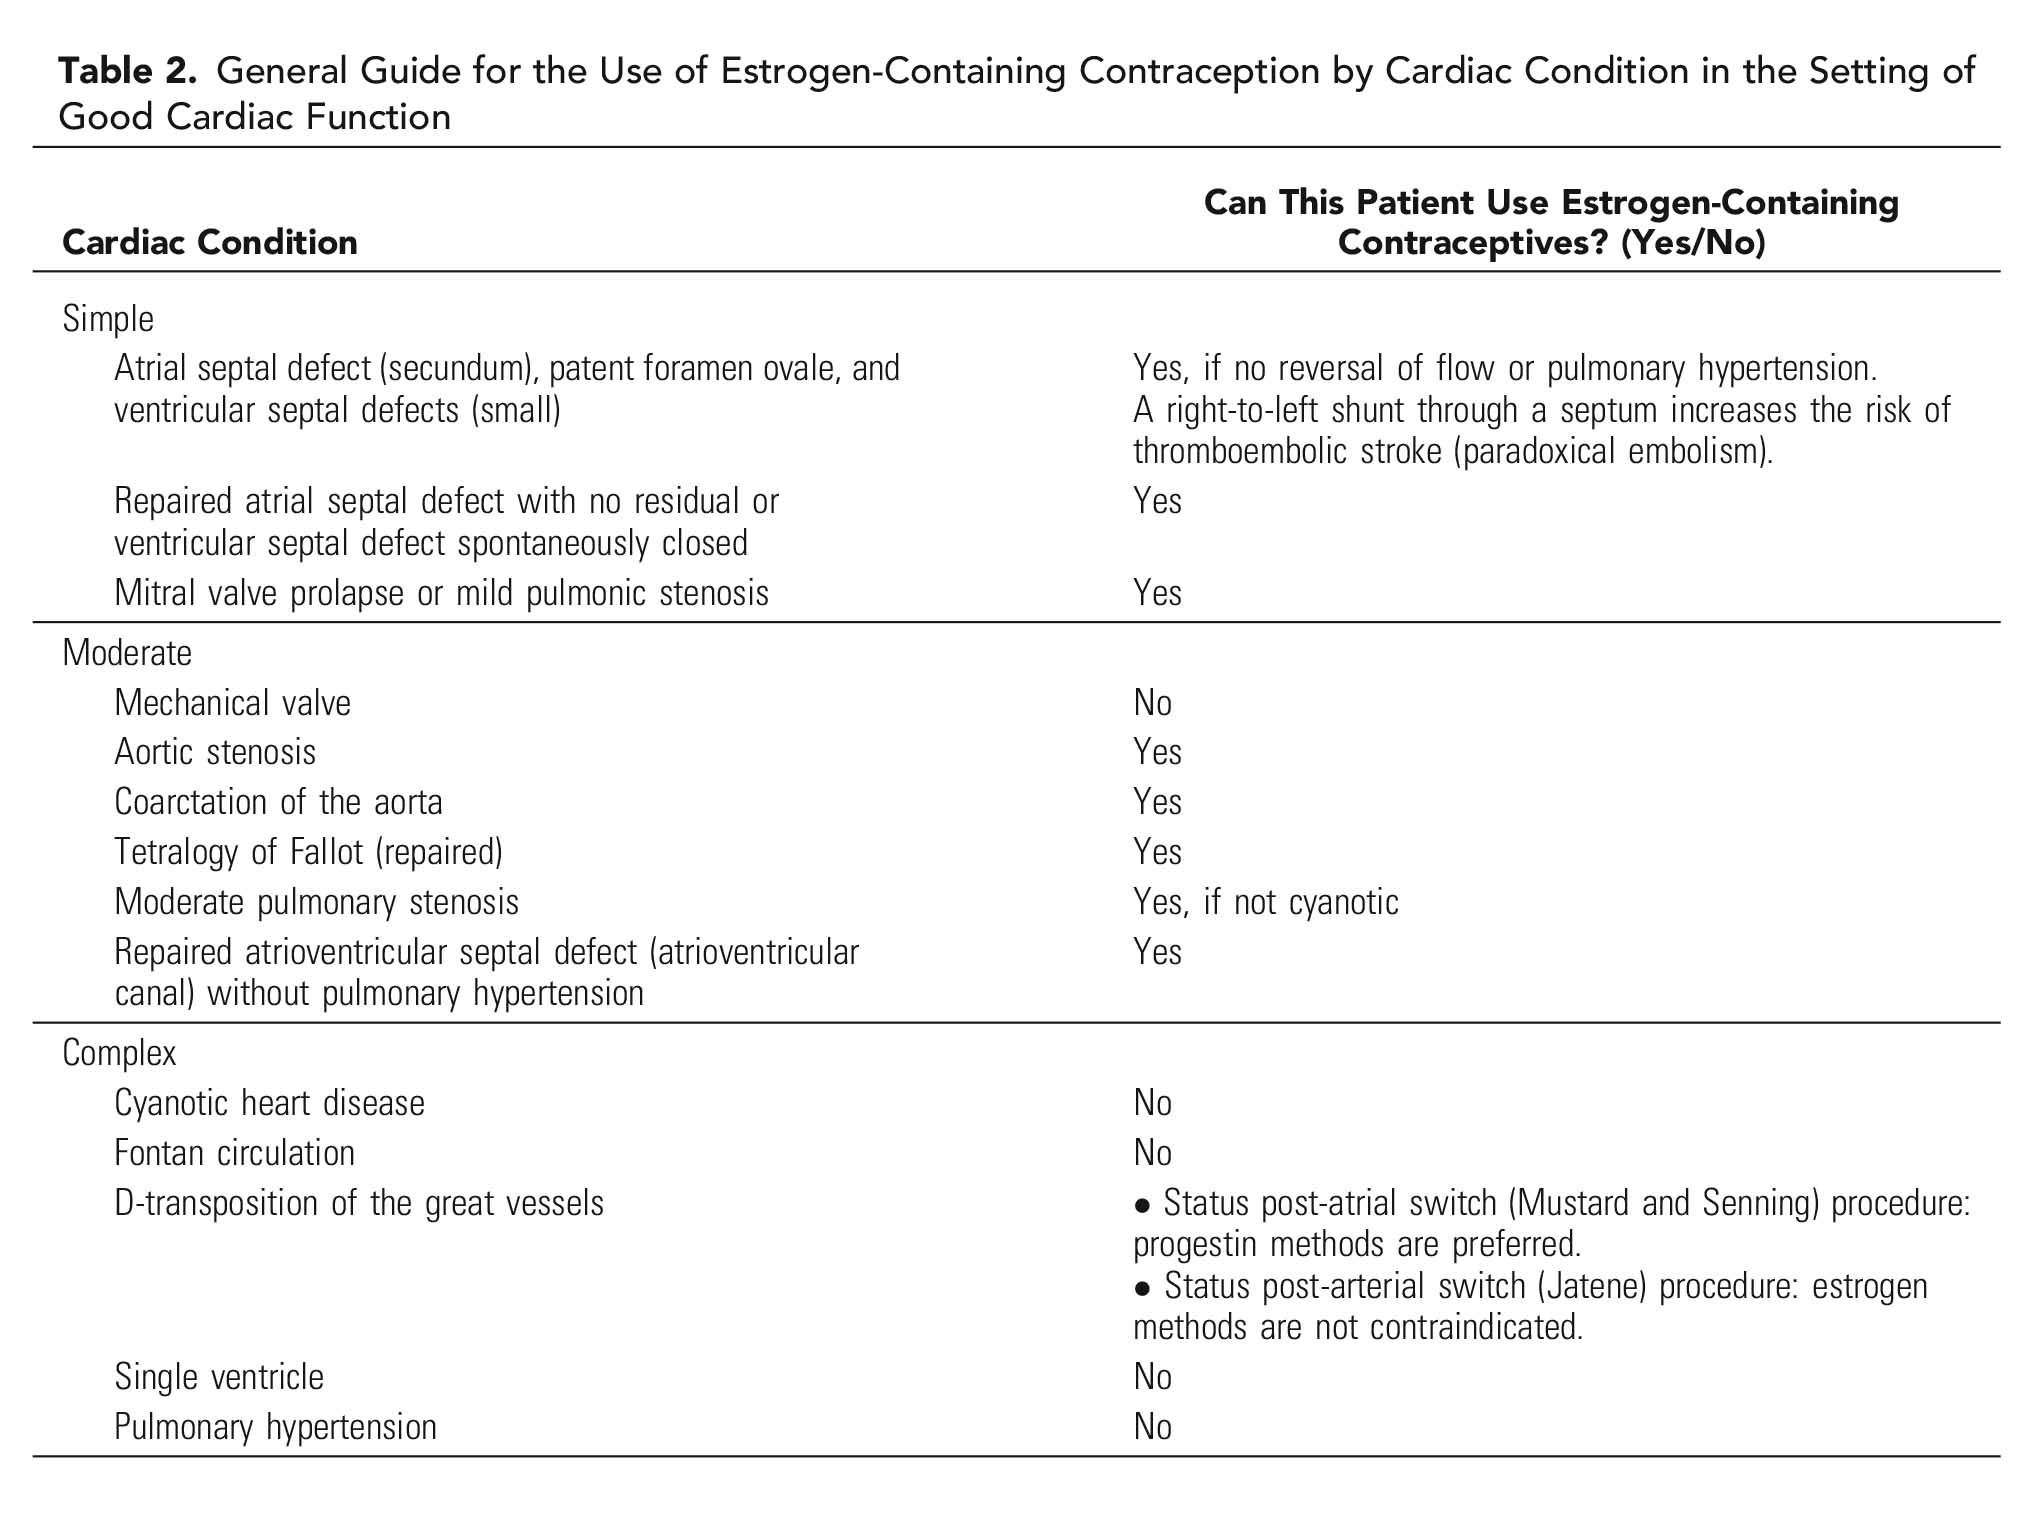 Table 2. General Guide for the Use of Estrogen-Containing Contraception by Cardiac Condition in the Setting of Good Cardiac Function